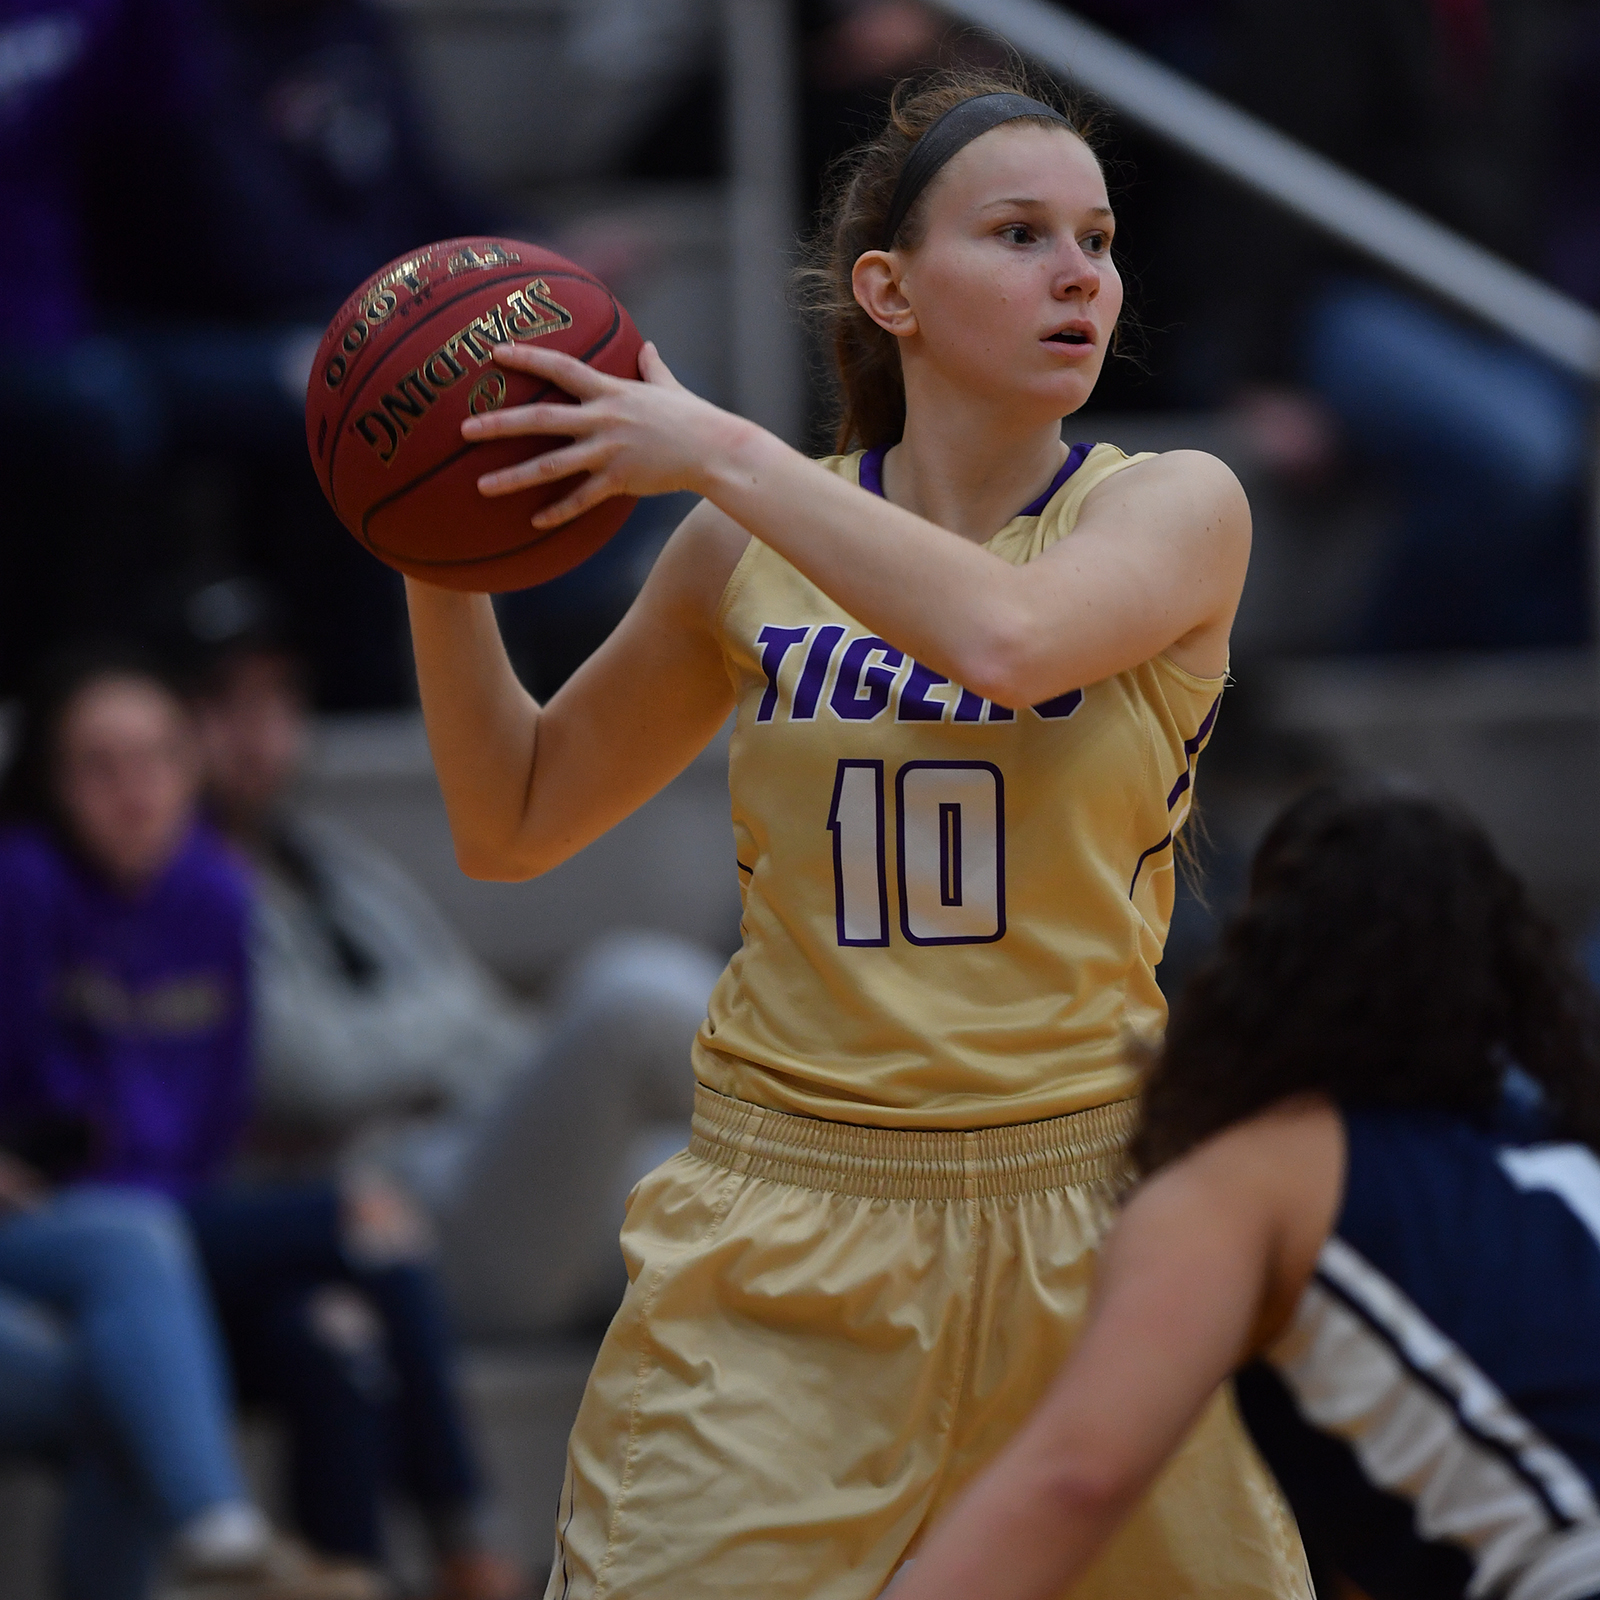 Olivet athletics_Tigers_women basketball_Tigerball_2018-2019_CCAC_Web2.jpg